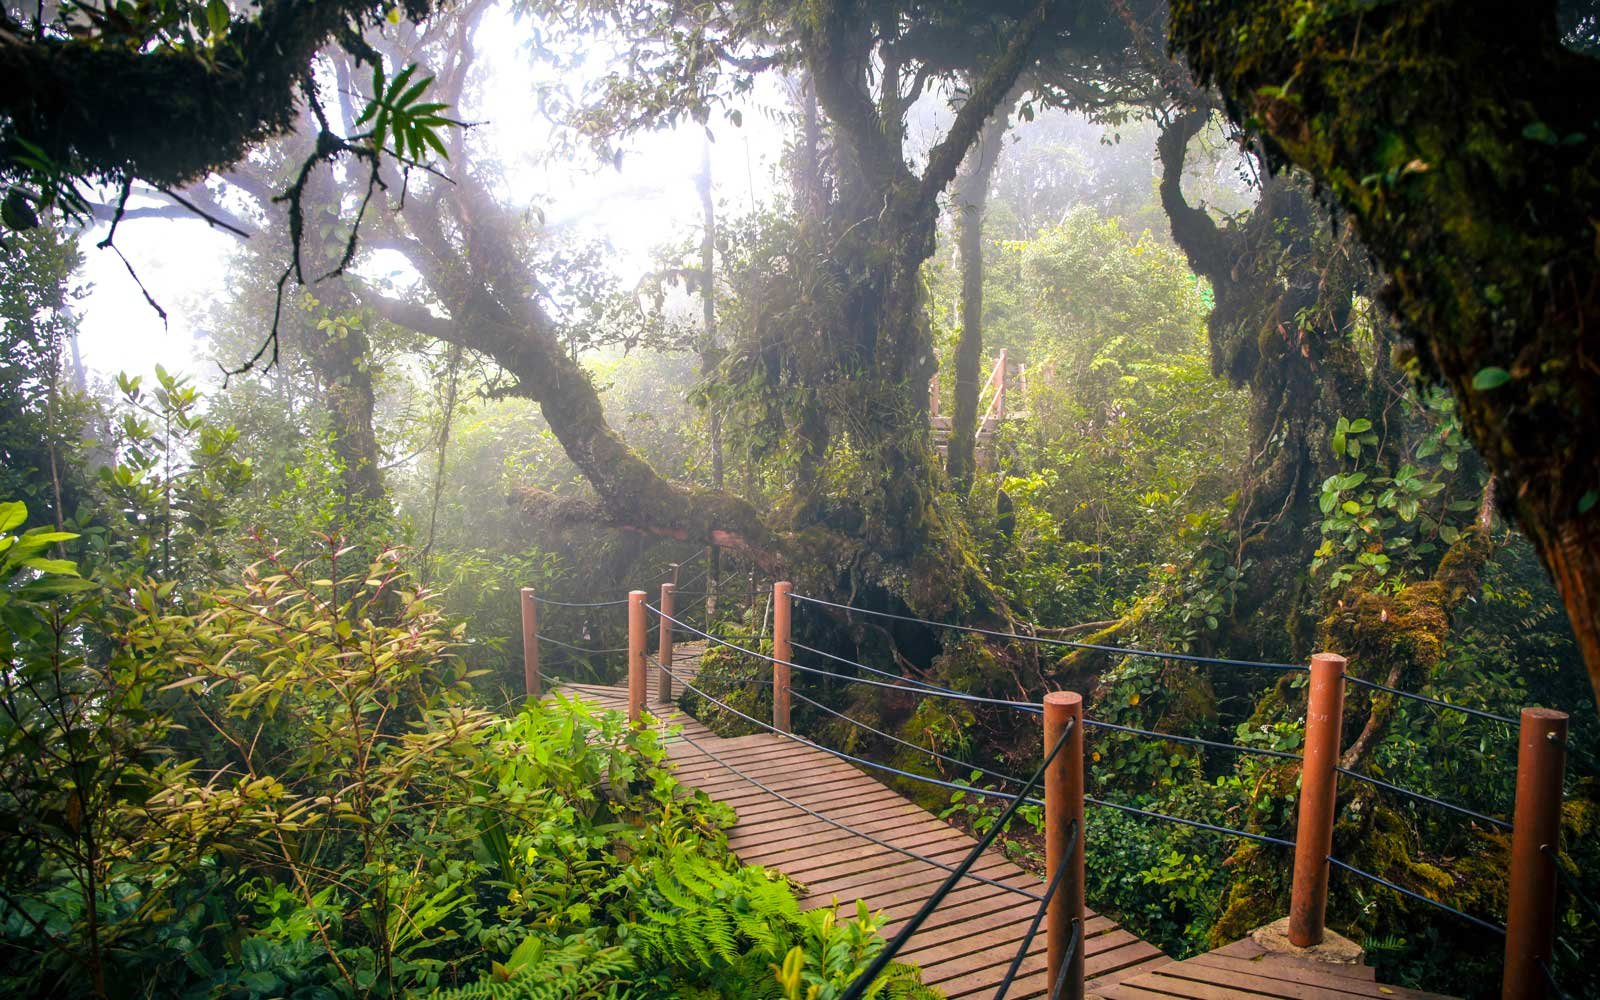 The Mossy Forest, Cameron Highland, Malaysia